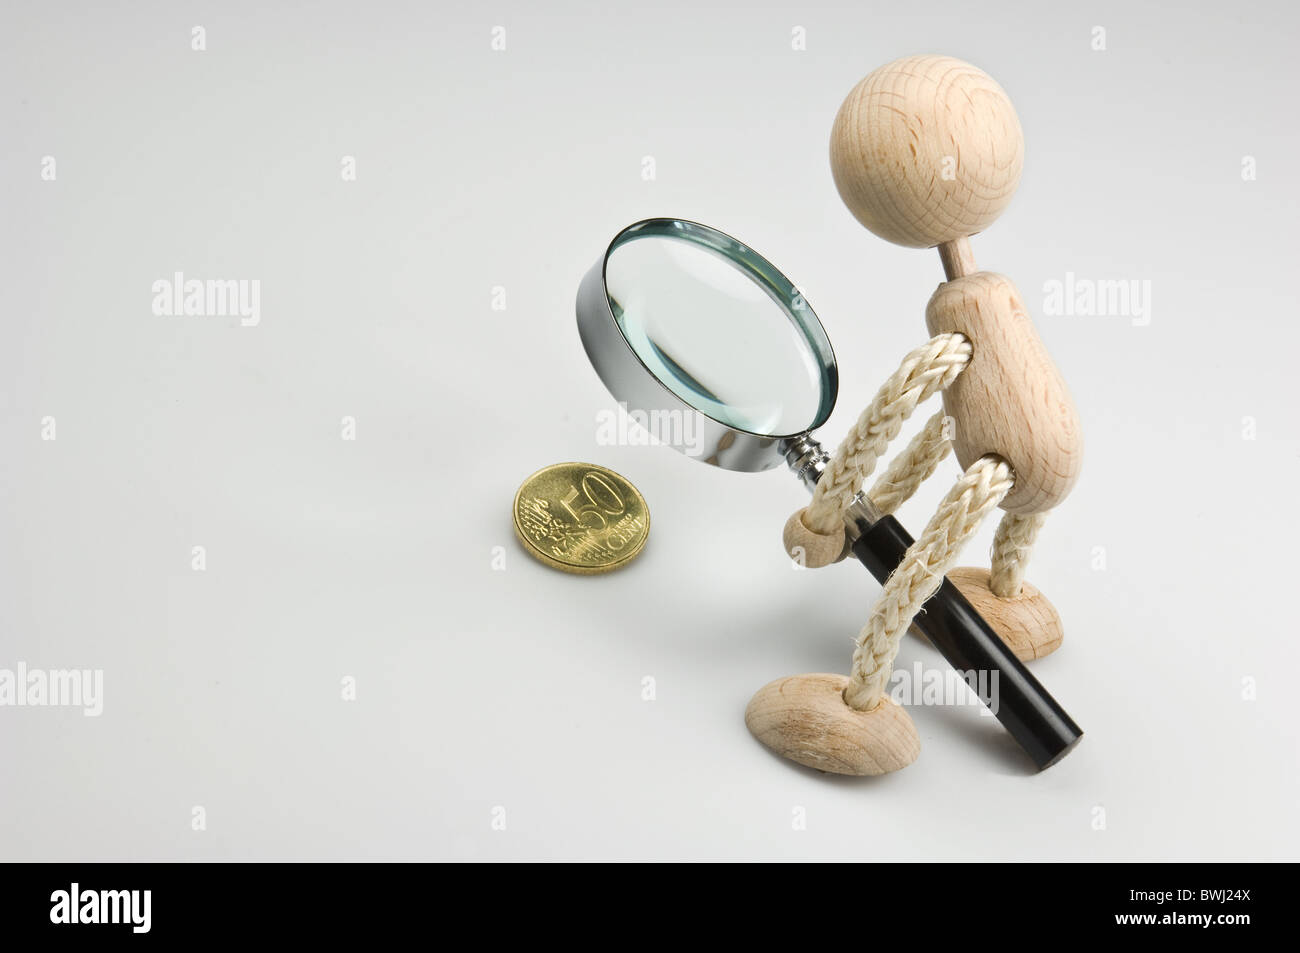 Euro coin, magnifying glass, figure - Stock Image